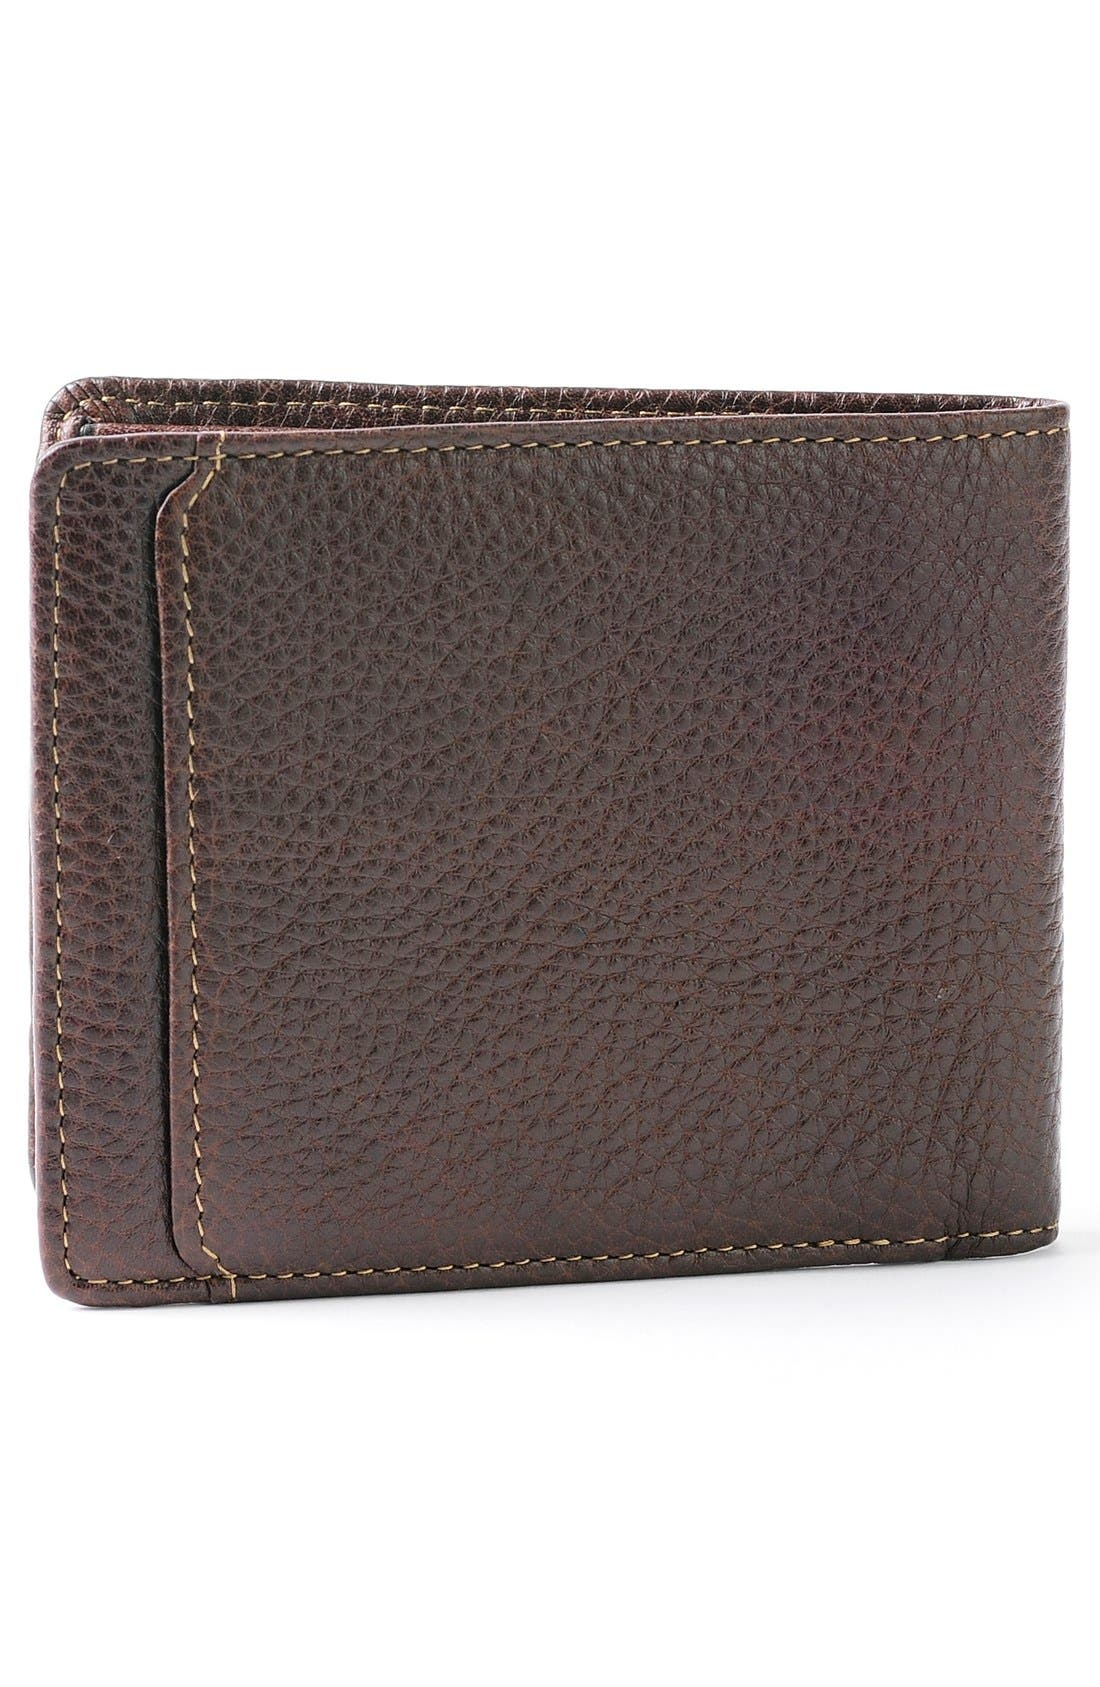 'Tyler' RFID Wallet,                             Alternate thumbnail 3, color,                             Coffee